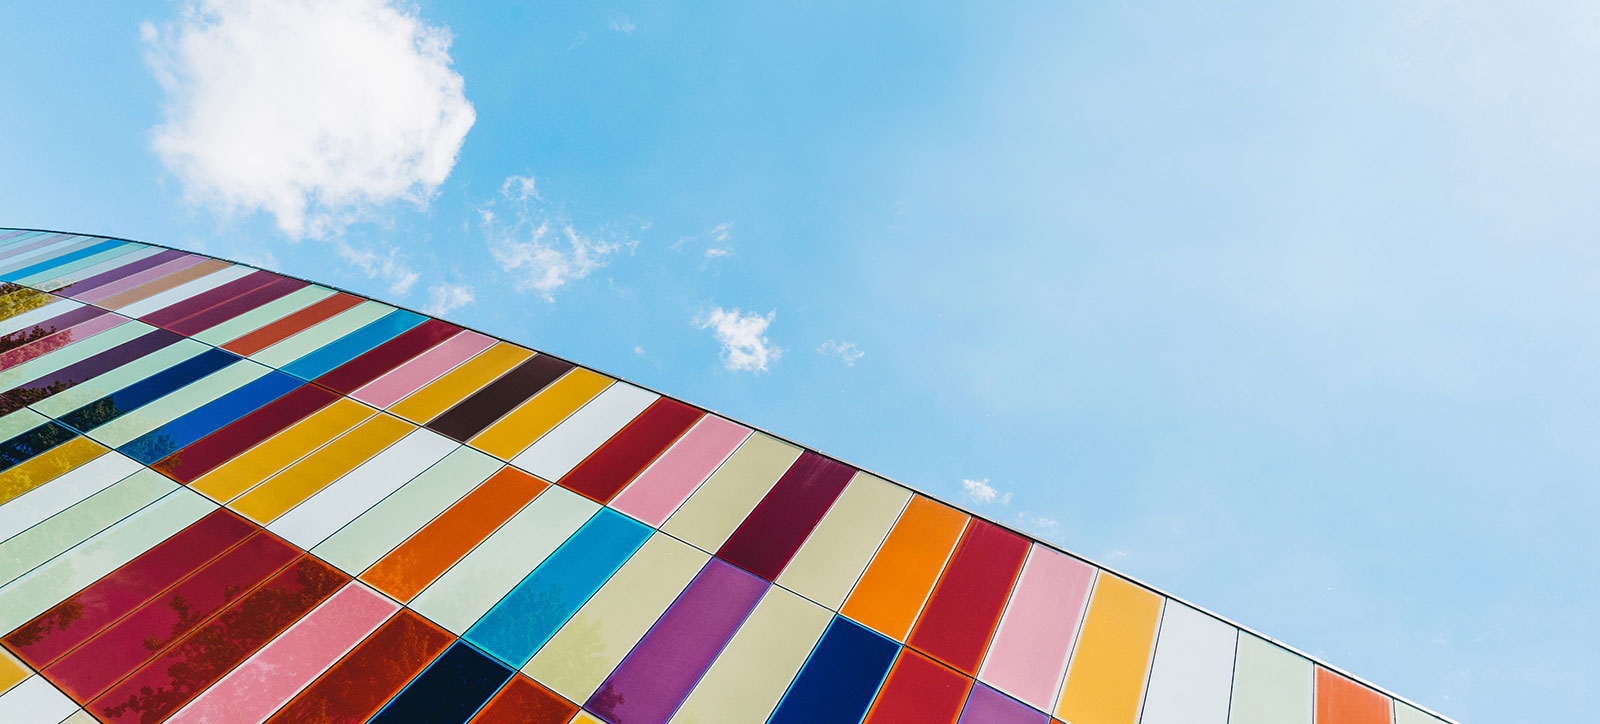 blue sky with colorful wall